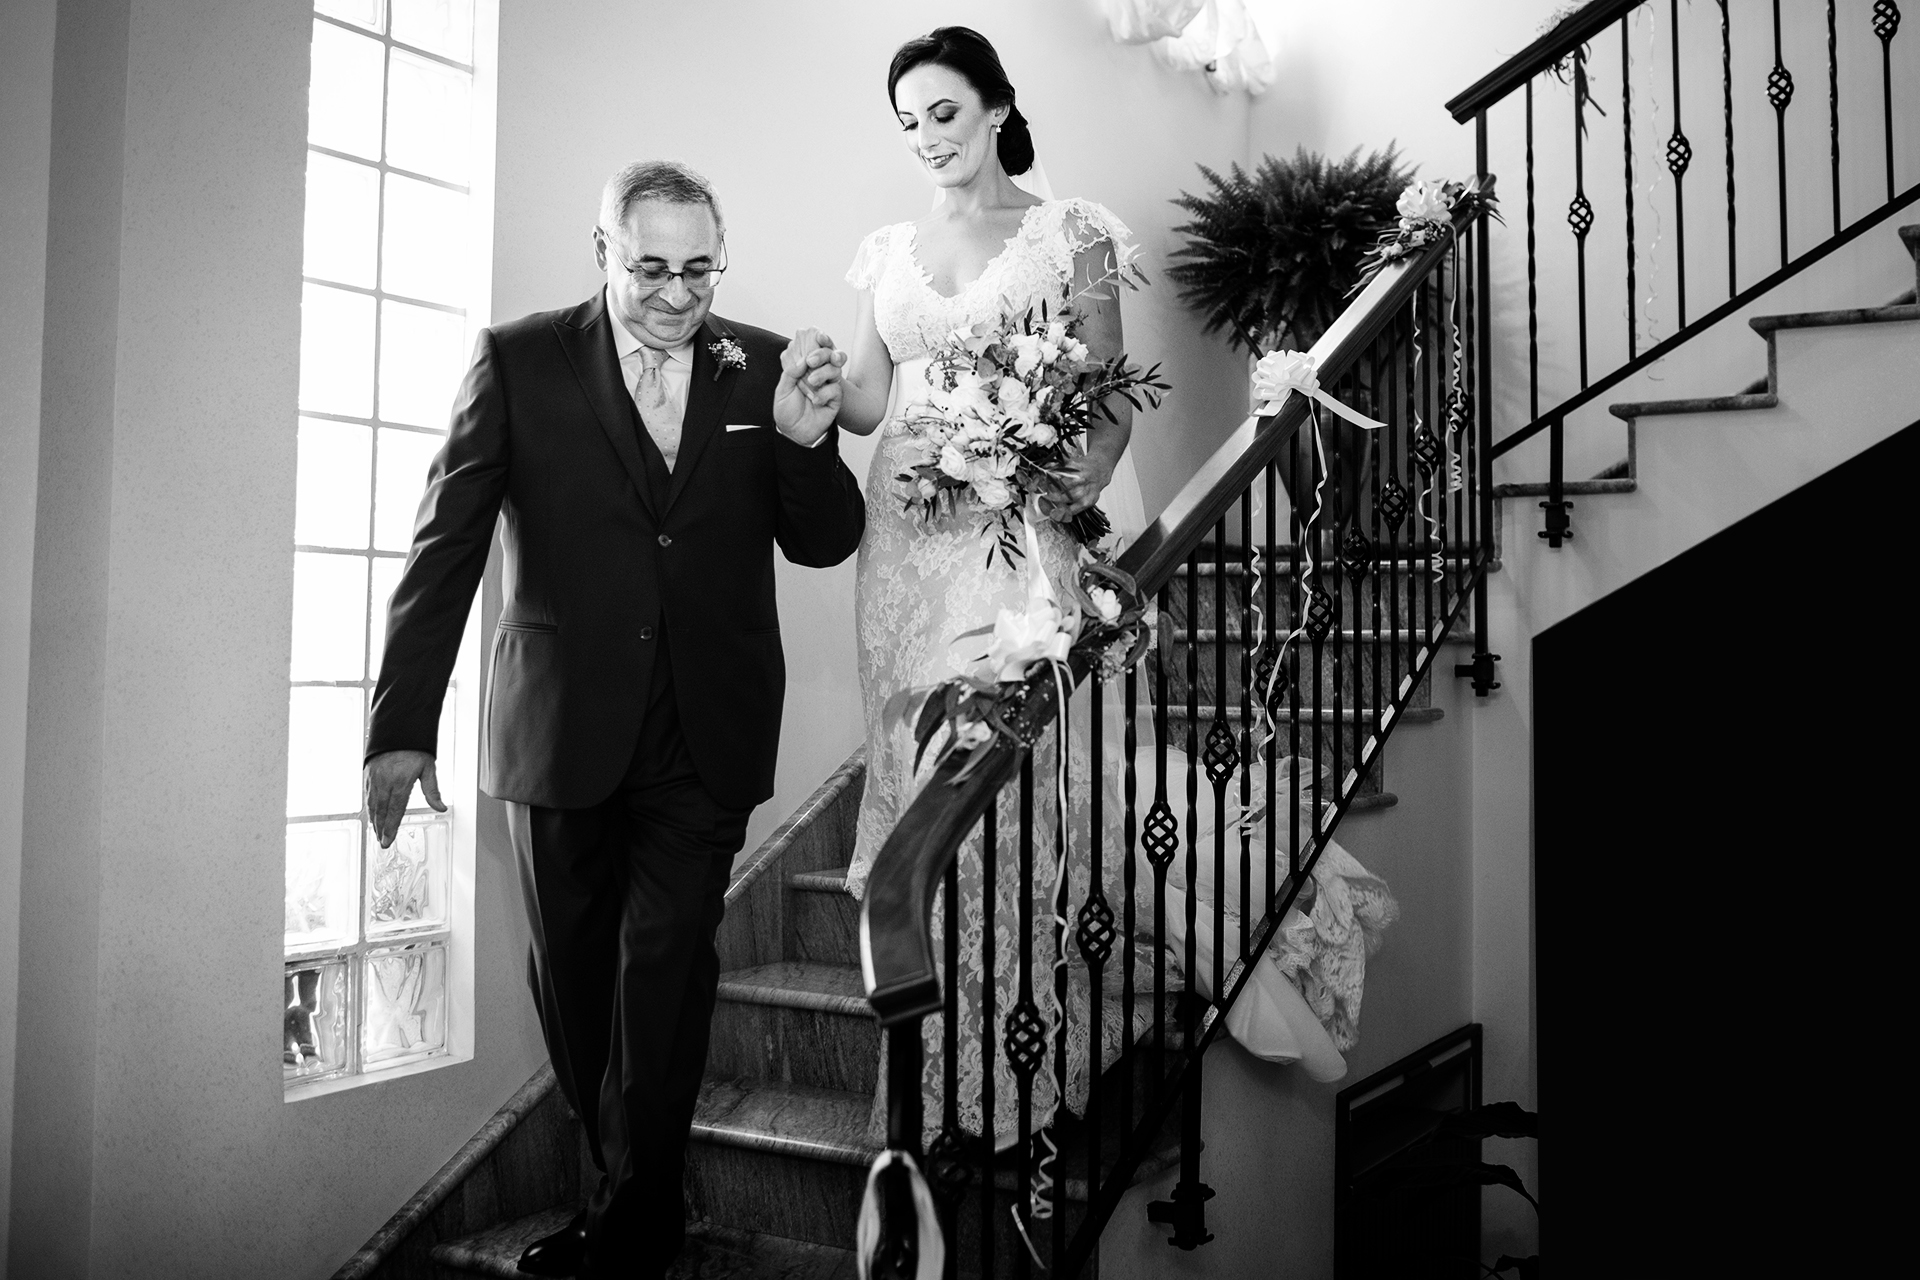 Sicily Wedding Photographers of Italy | Accompanied by her father, the elegant bride walks down the stairs